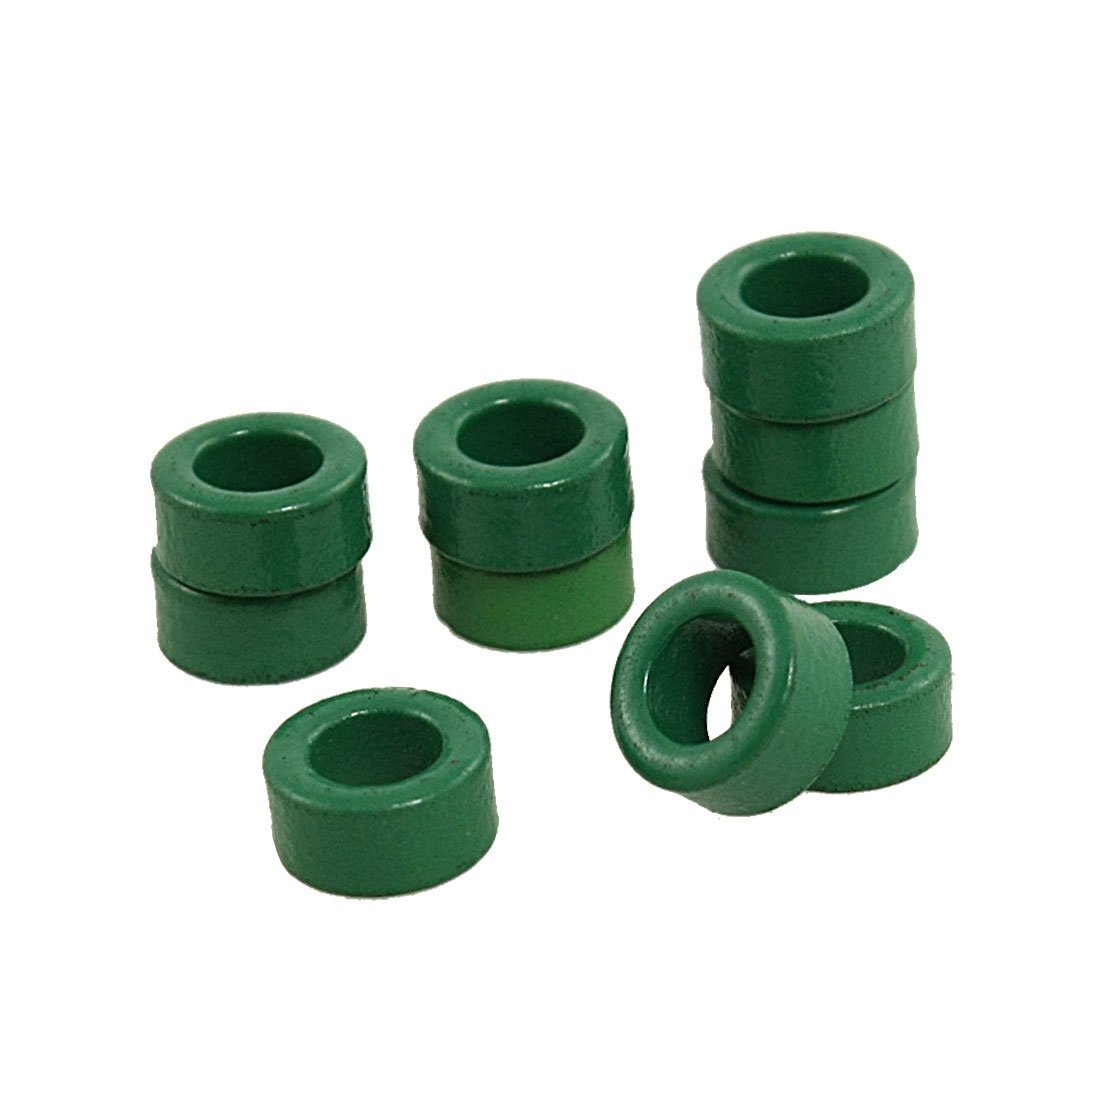 LNHF Wholesale 10 Pcs Inductor Coils Green Toroid Ferrite Cores 10mm x 6mm x 5mm<br><br>Aliexpress